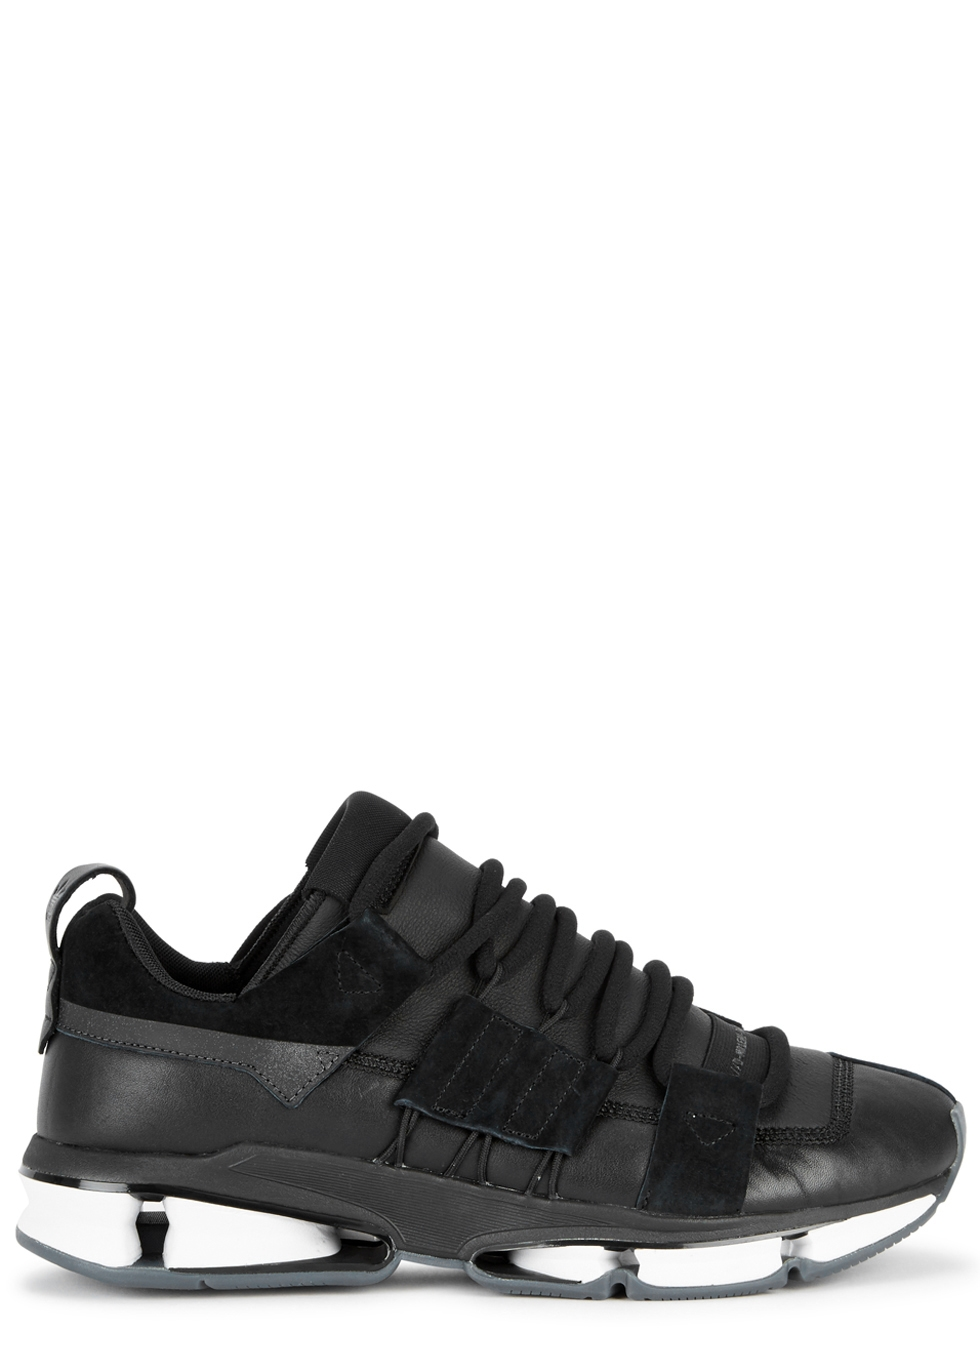 Twinstrike Adv Leather And Suede Sneakers - Blackadidas Originals hGHUMD